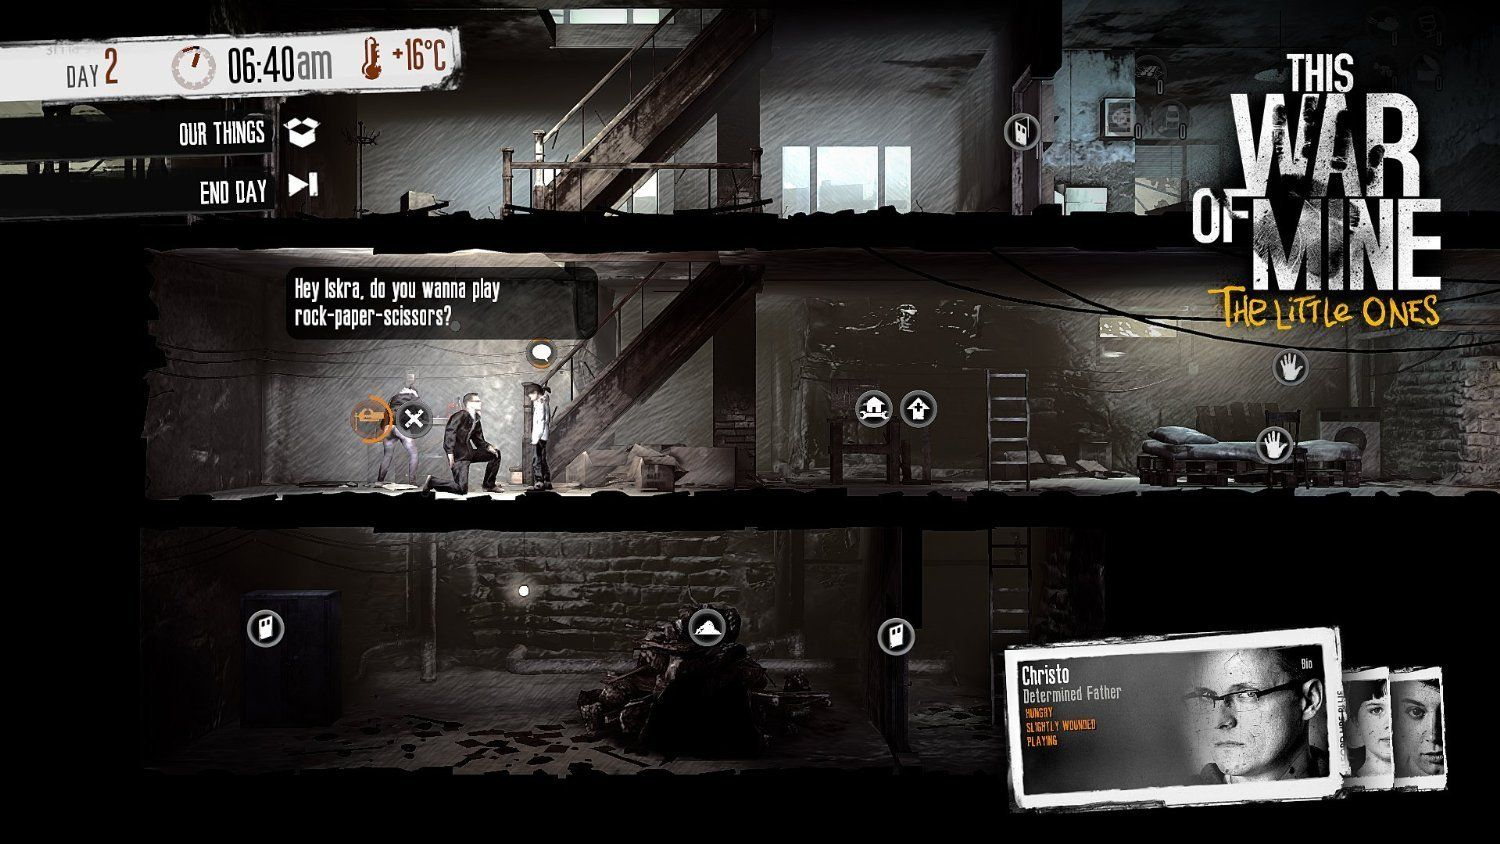 This War Of Mine: The Little Ones (Xbox One) - 5